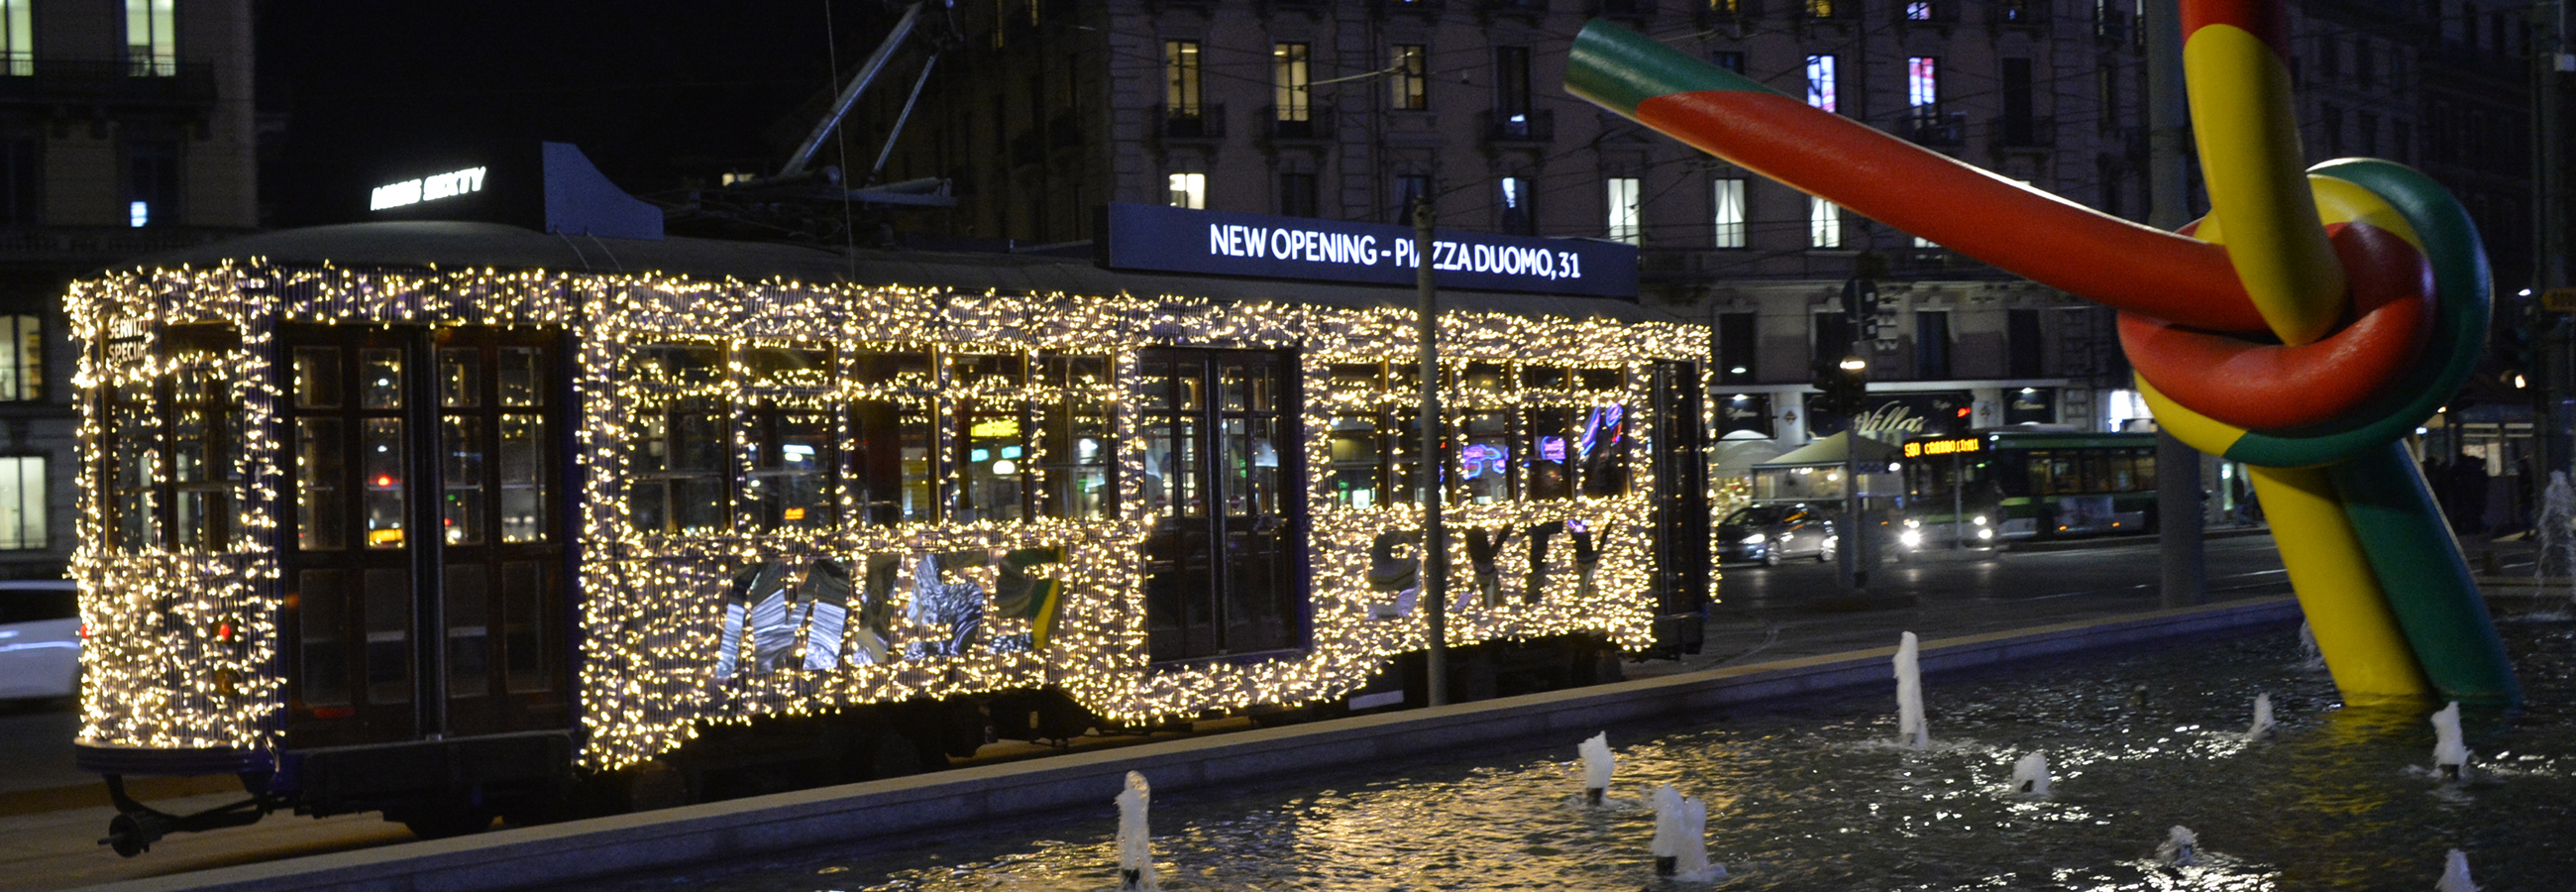 The Christmas Tram is back in Milan